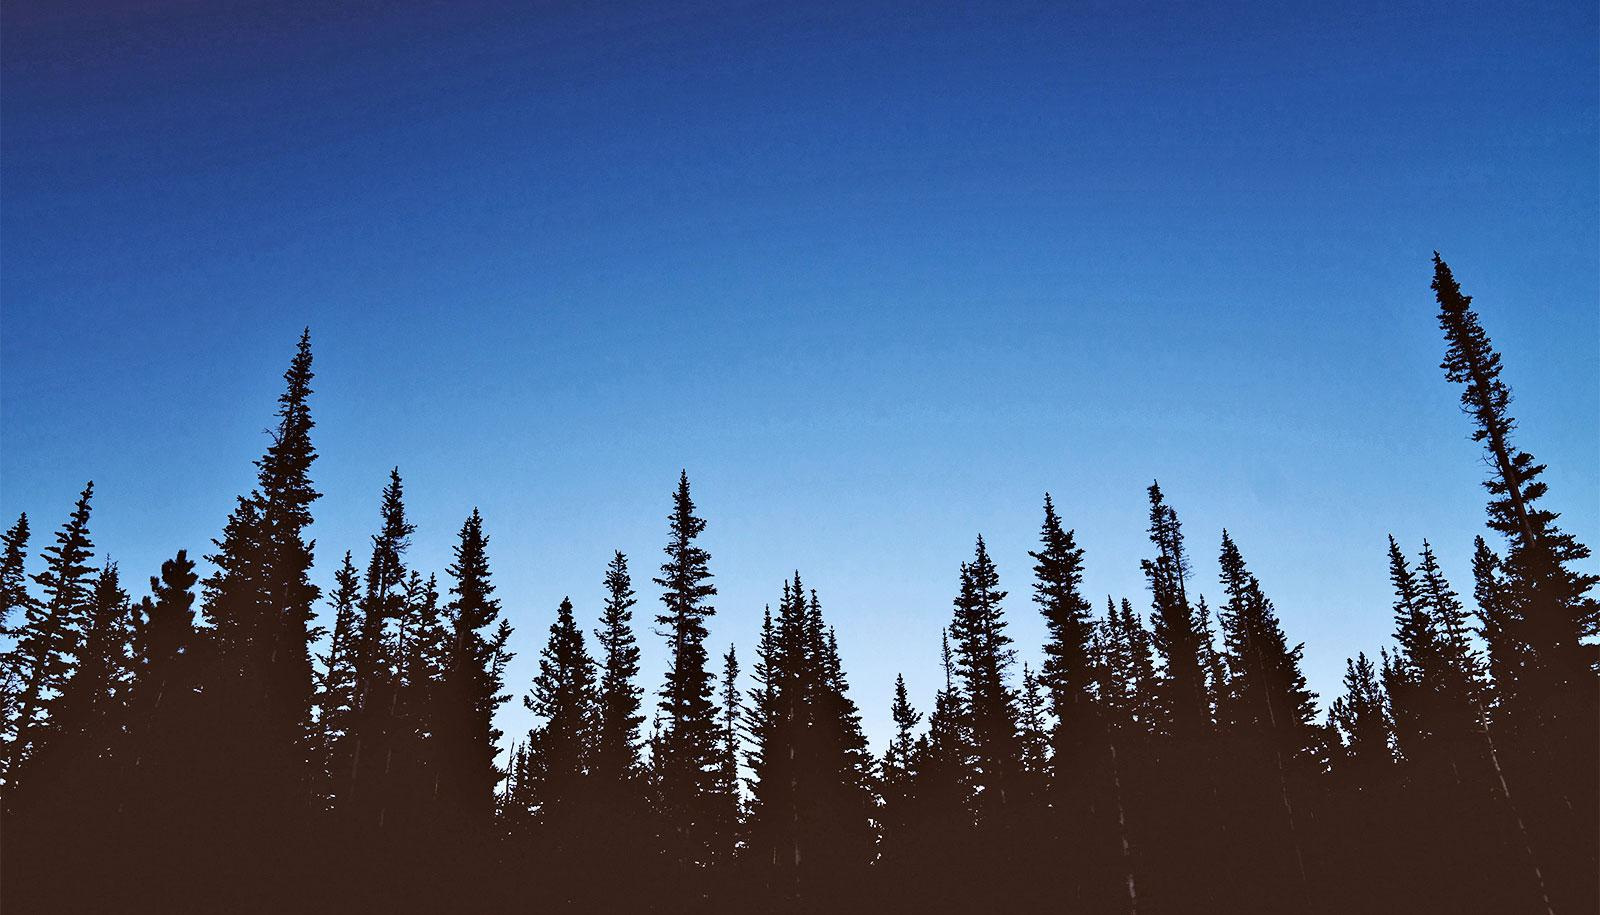 The silhouettes of trees show up black against a blue sky as the sun goes down